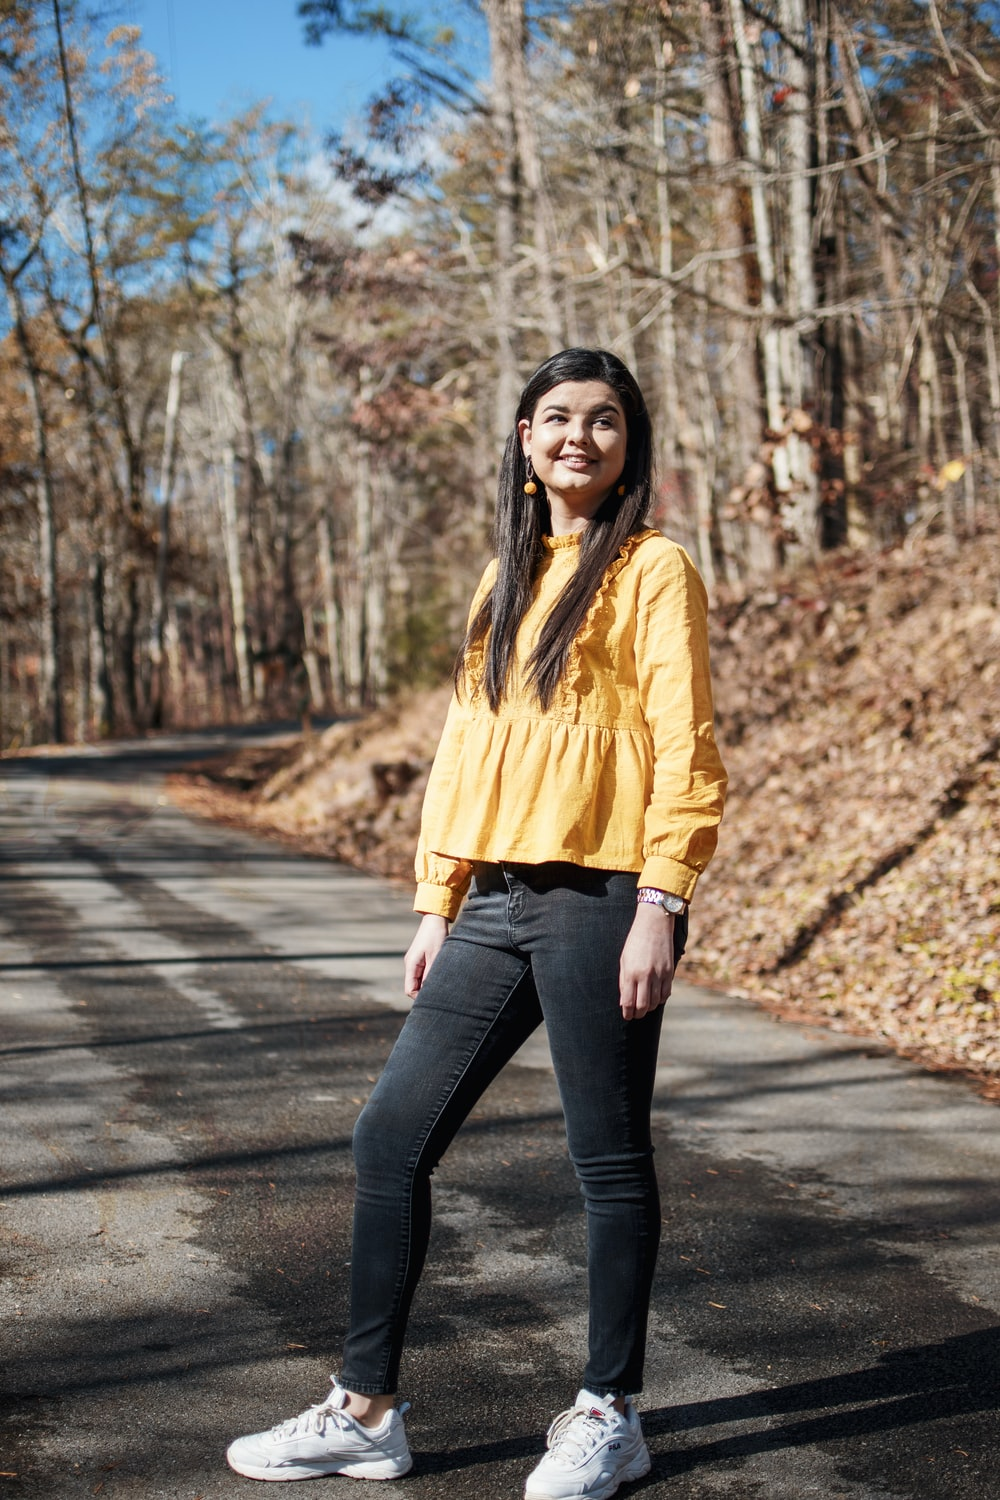 woman in yellow long sleeve shirt and blue denim jeans standing on gray concrete pathway during